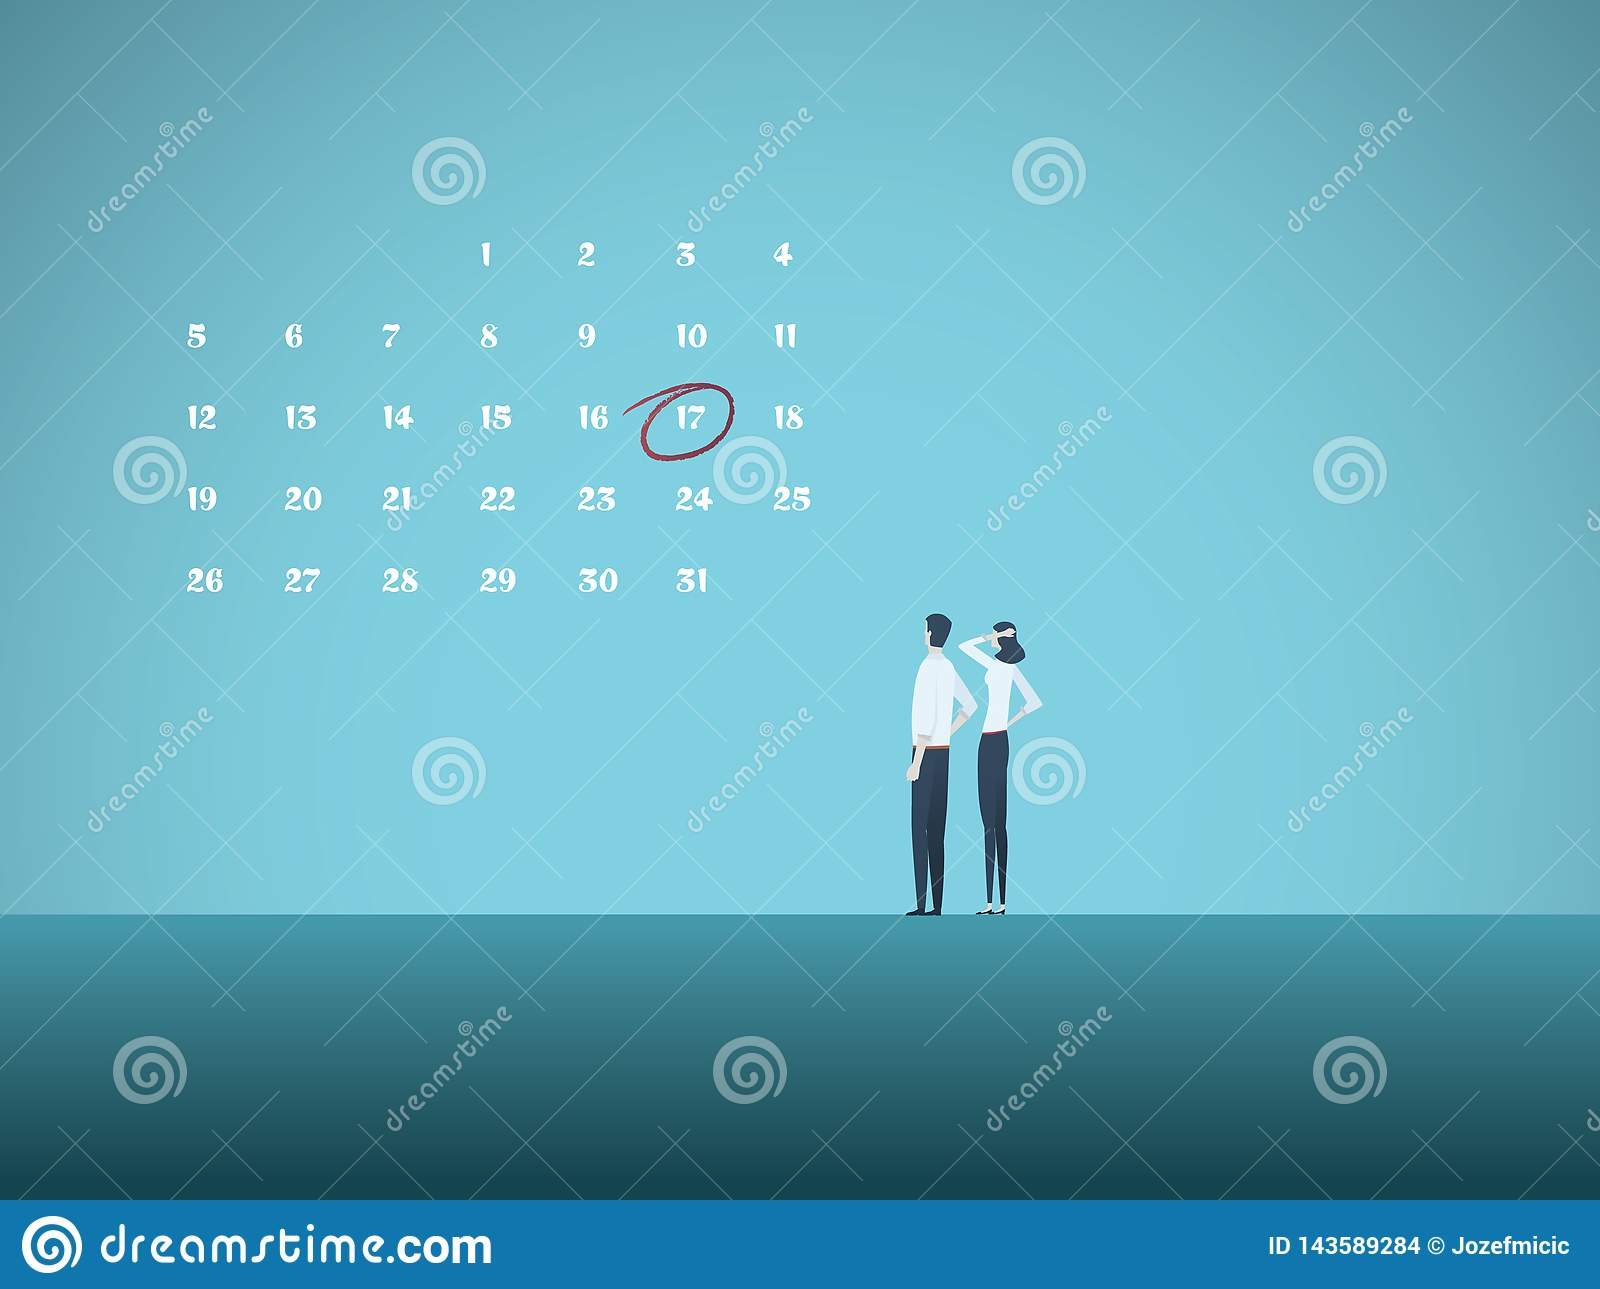 Business deadline vector concept with man and woman looking at calender. Symbol of project management, milestones